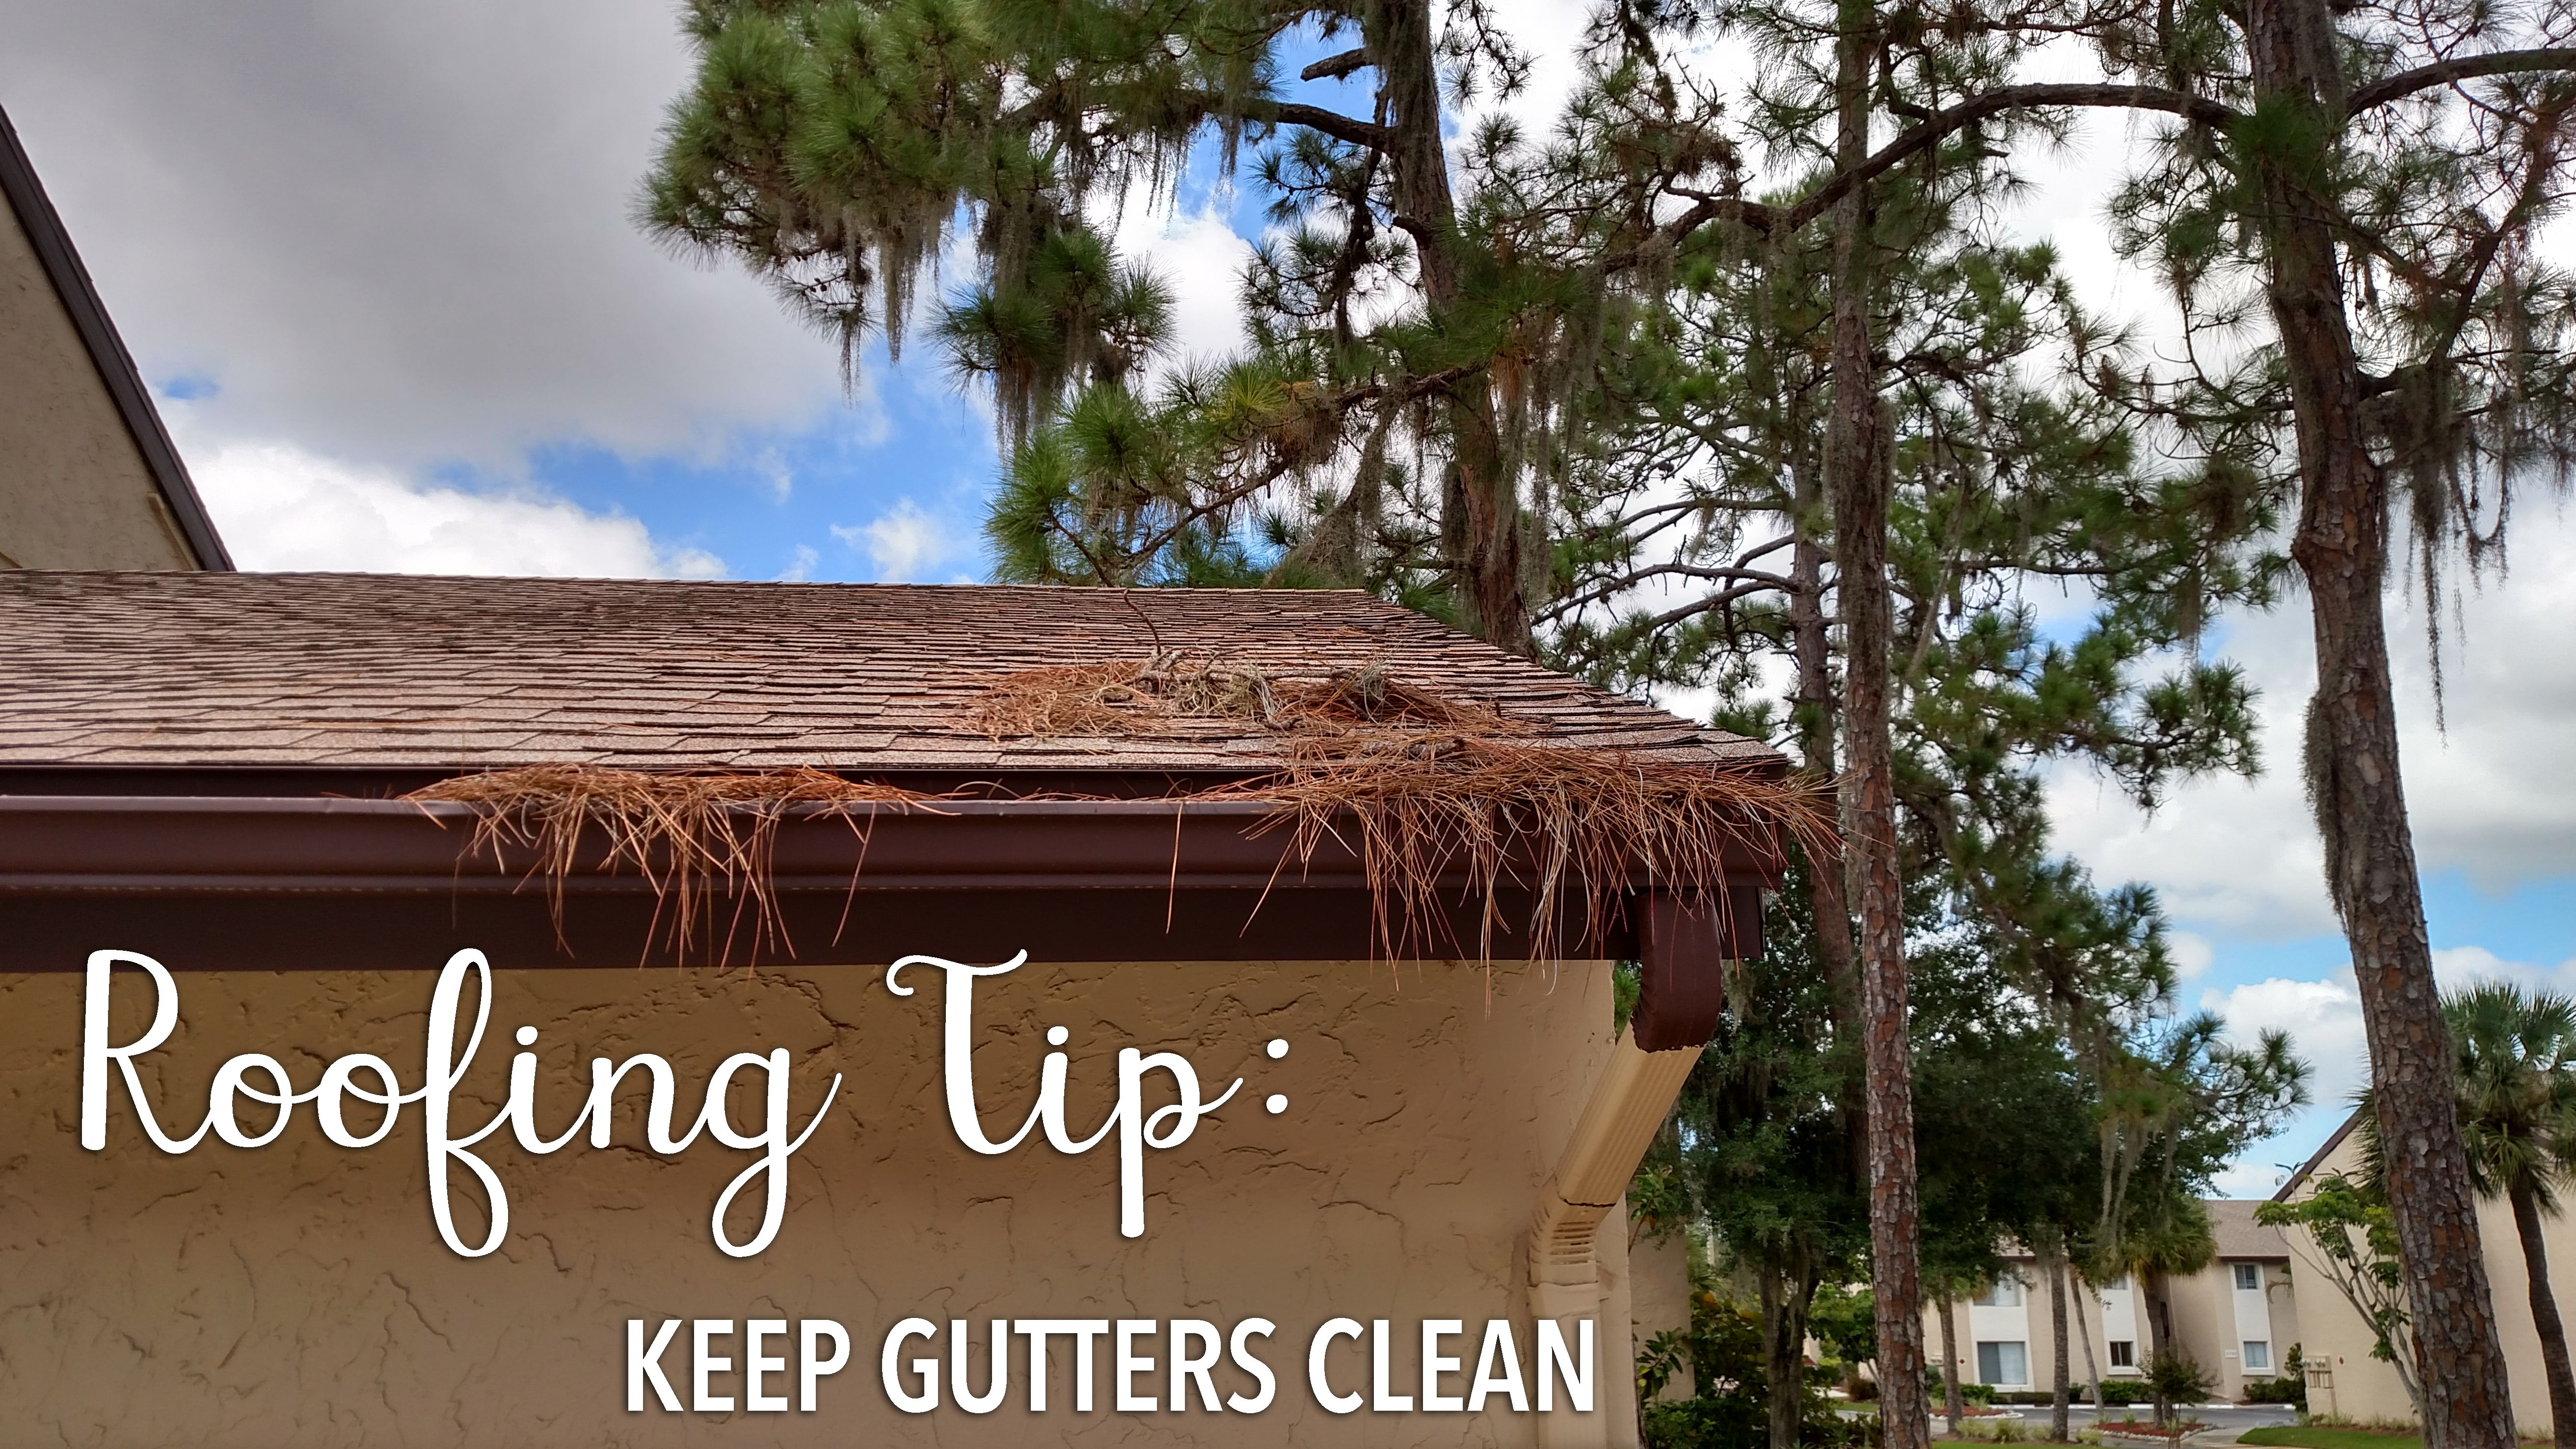 Roofing tip tuesday clean your gutters one of the most common